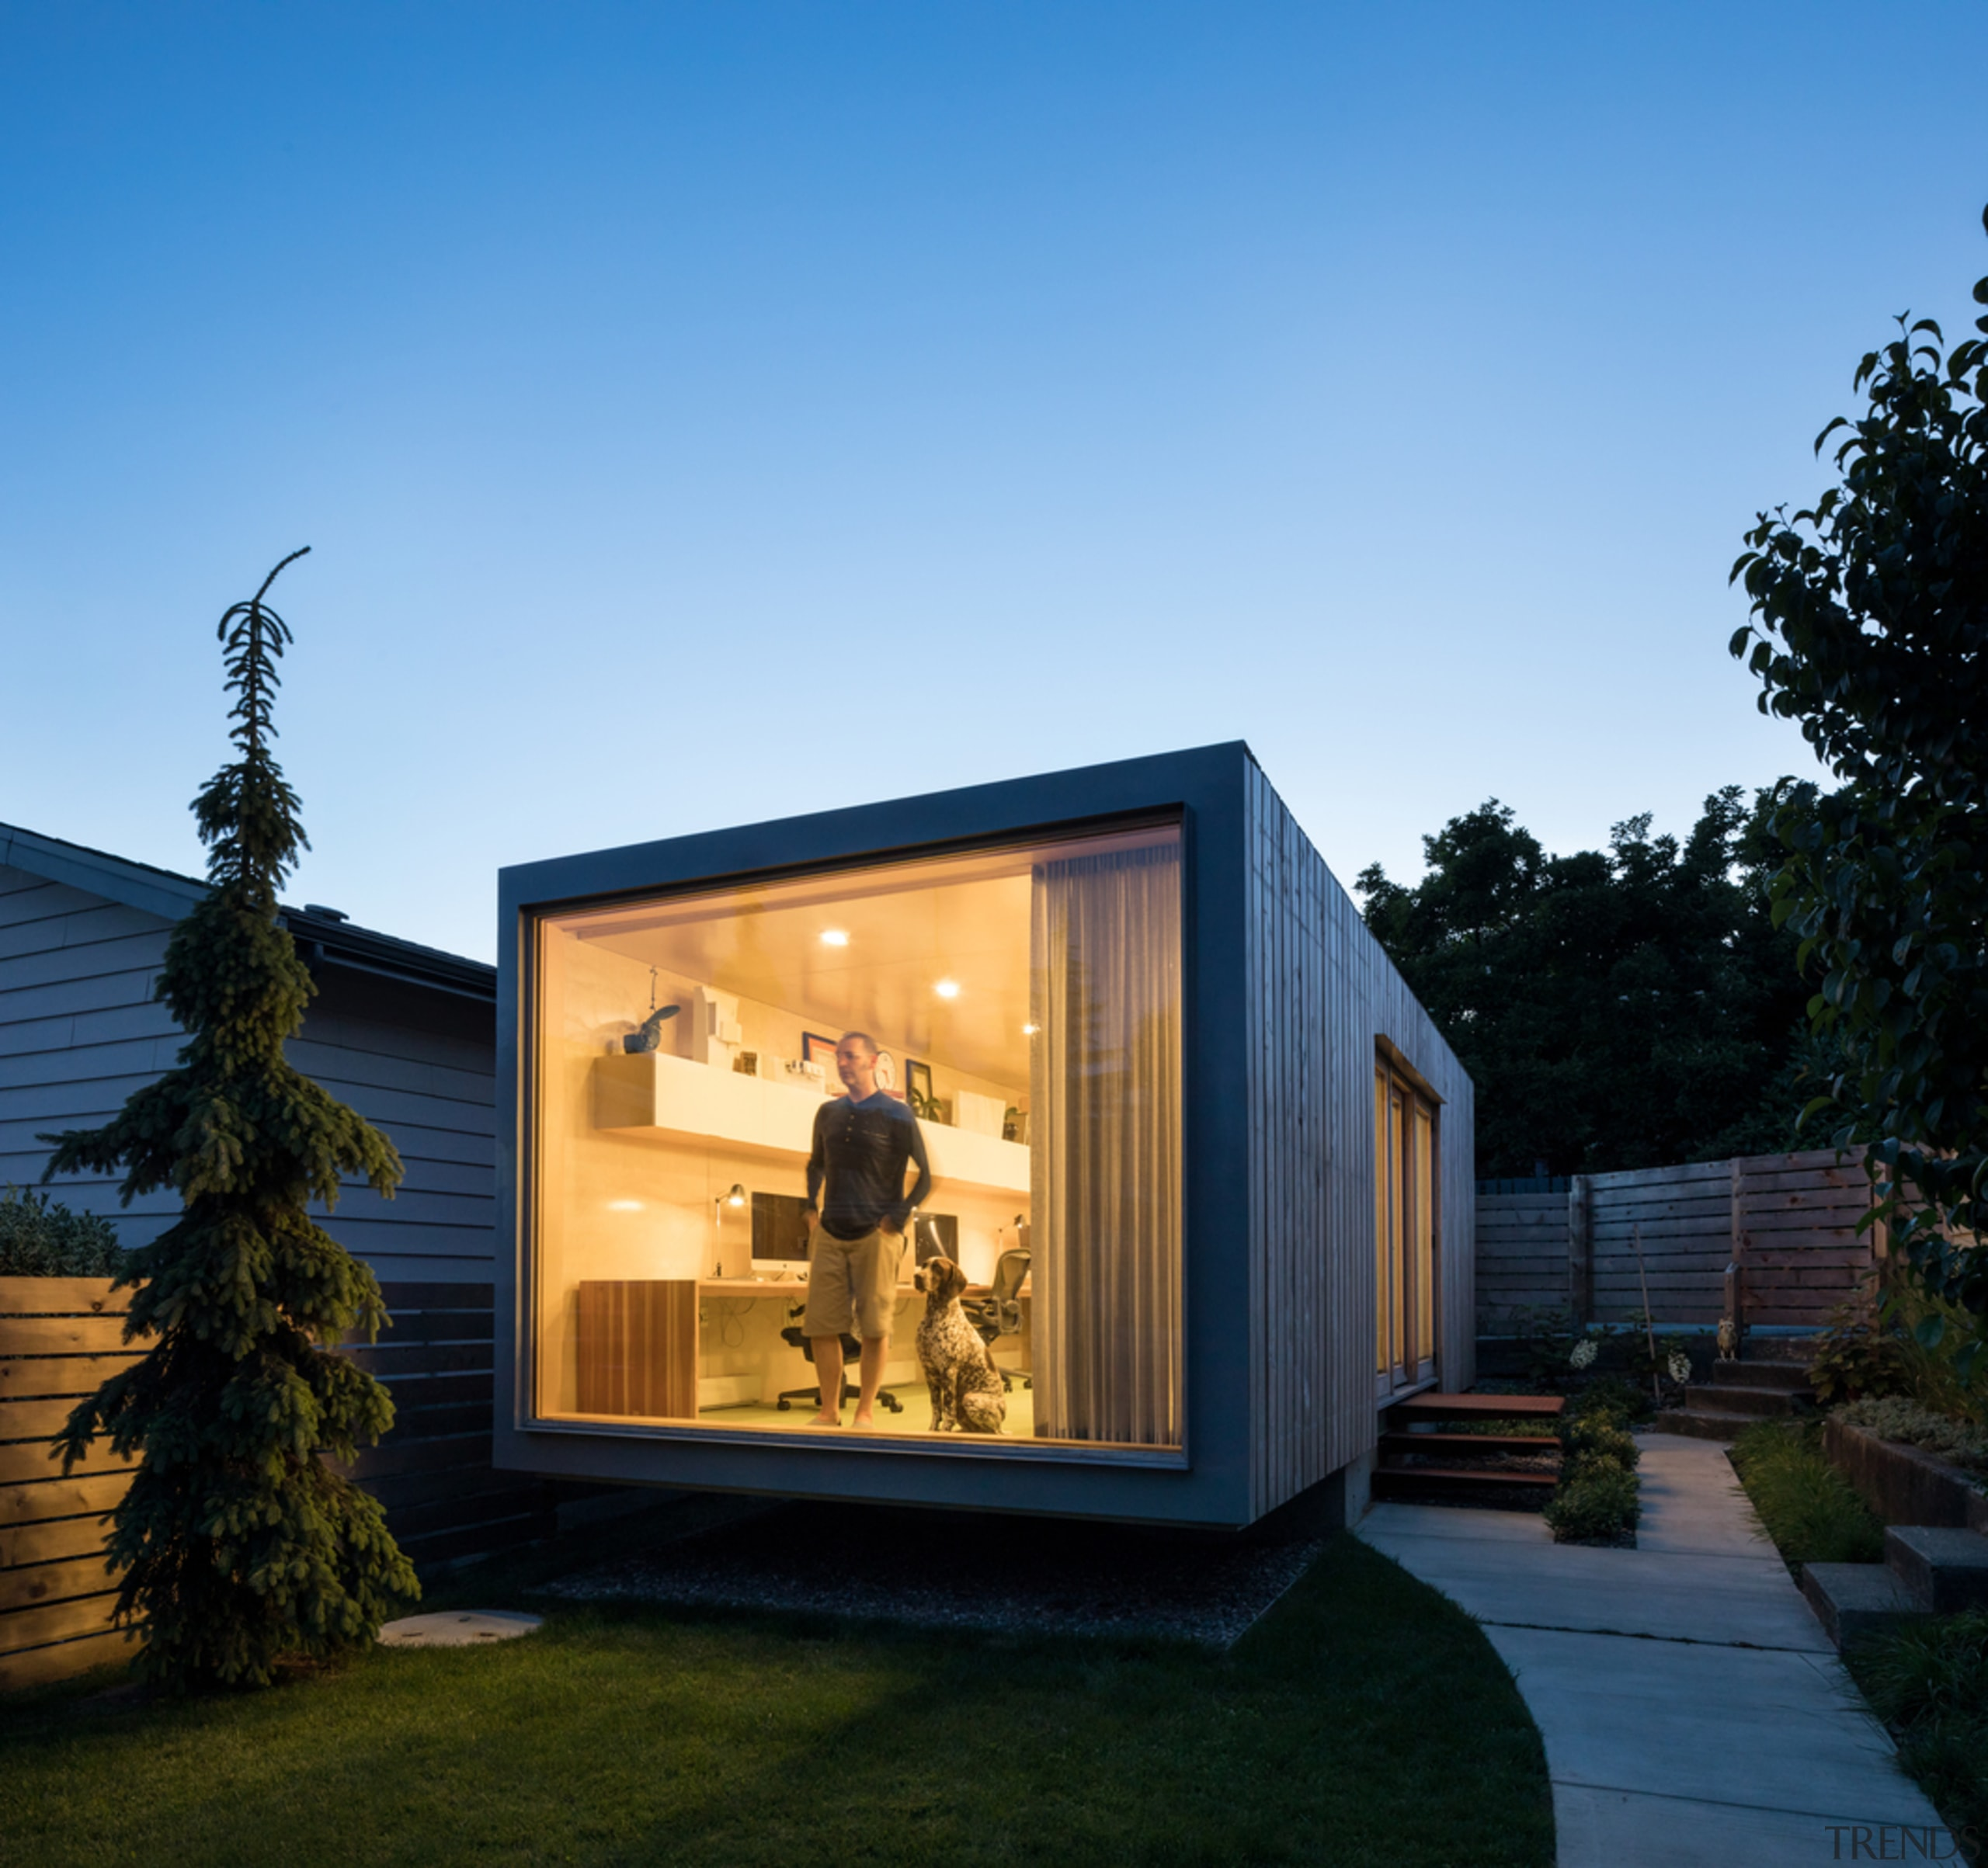 Architect in residence - architecture | building | architecture, building, cottage, facade, home, house, property, real estate, shed, siding, window, teal, black